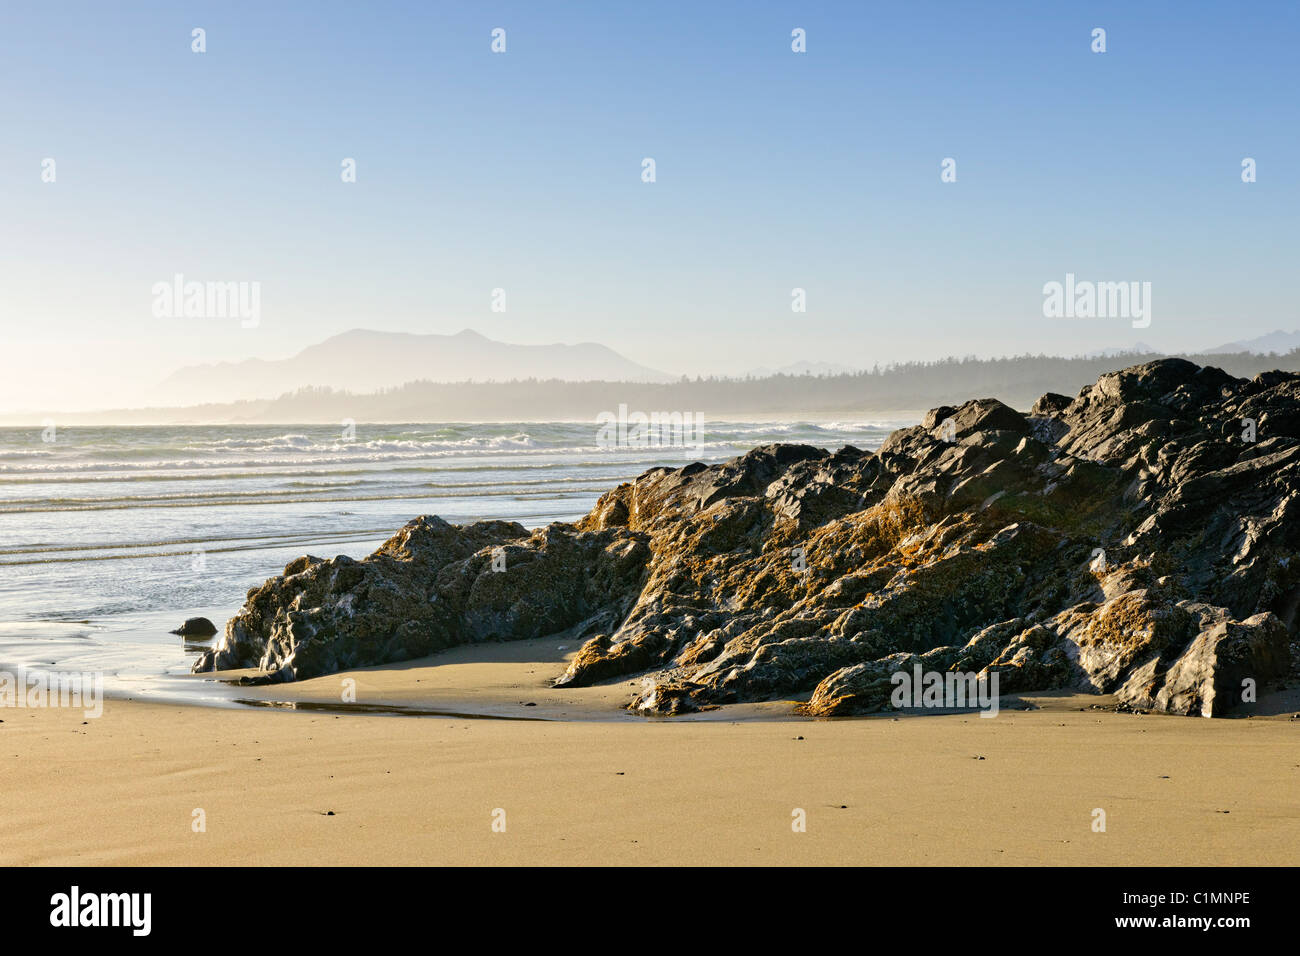 Rocky shore of Long Beach in Pacific Rim National park, Canada - Stock Image